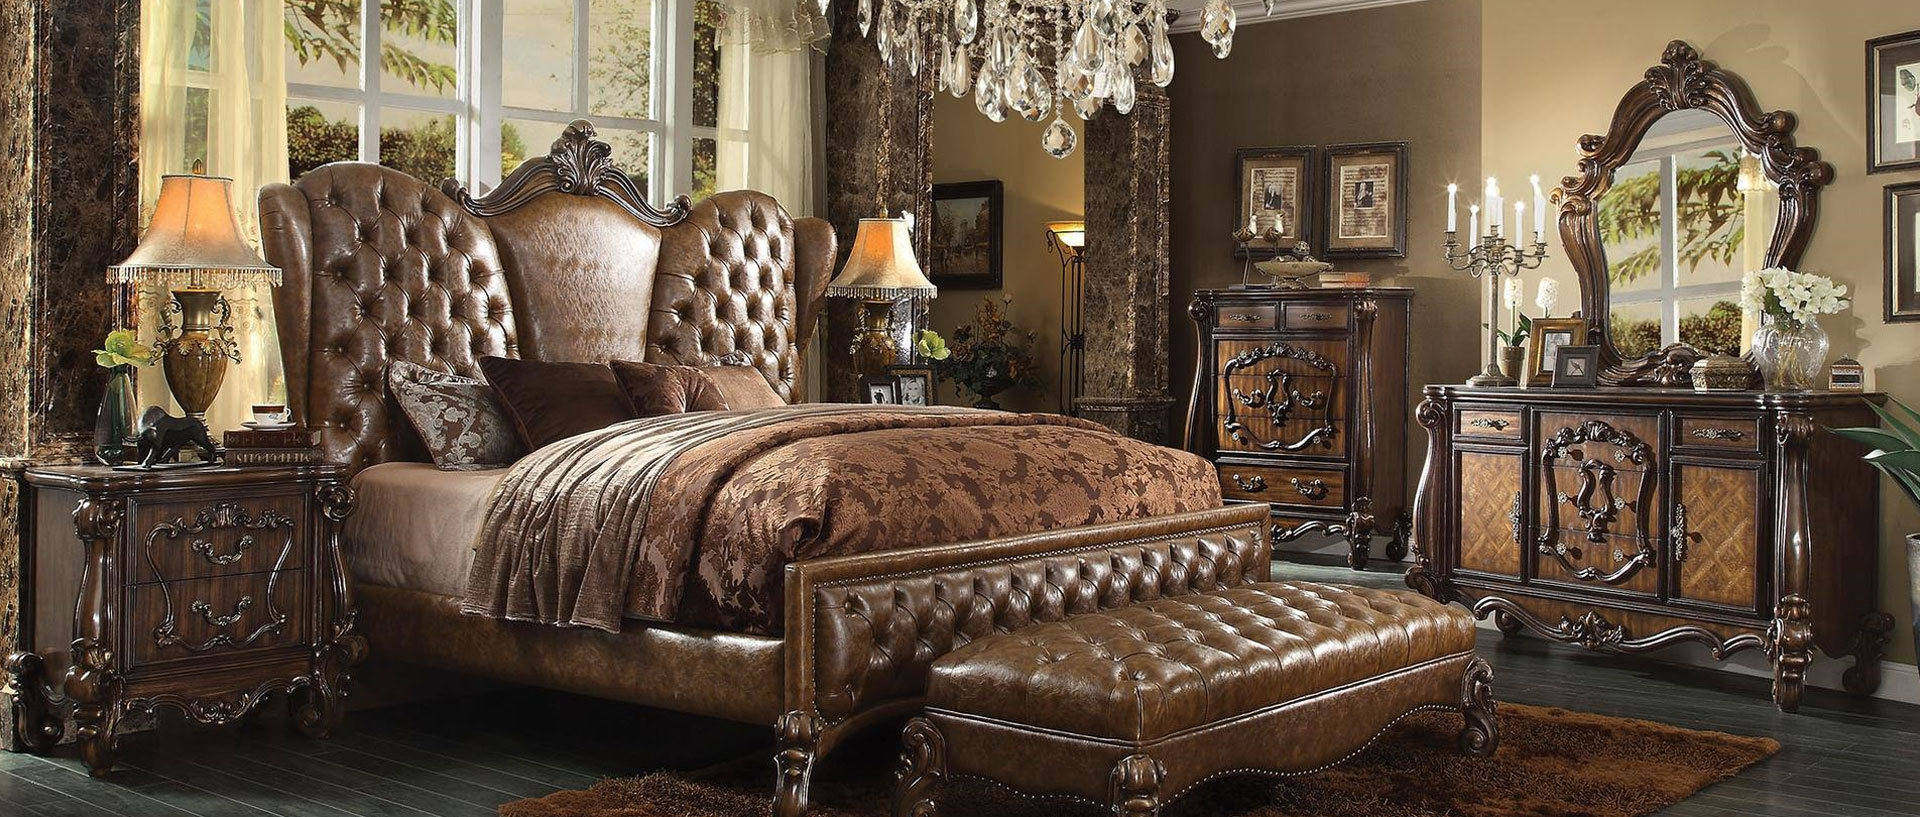 21097EK6PC ACME Versailles 6PC Bedroom Set